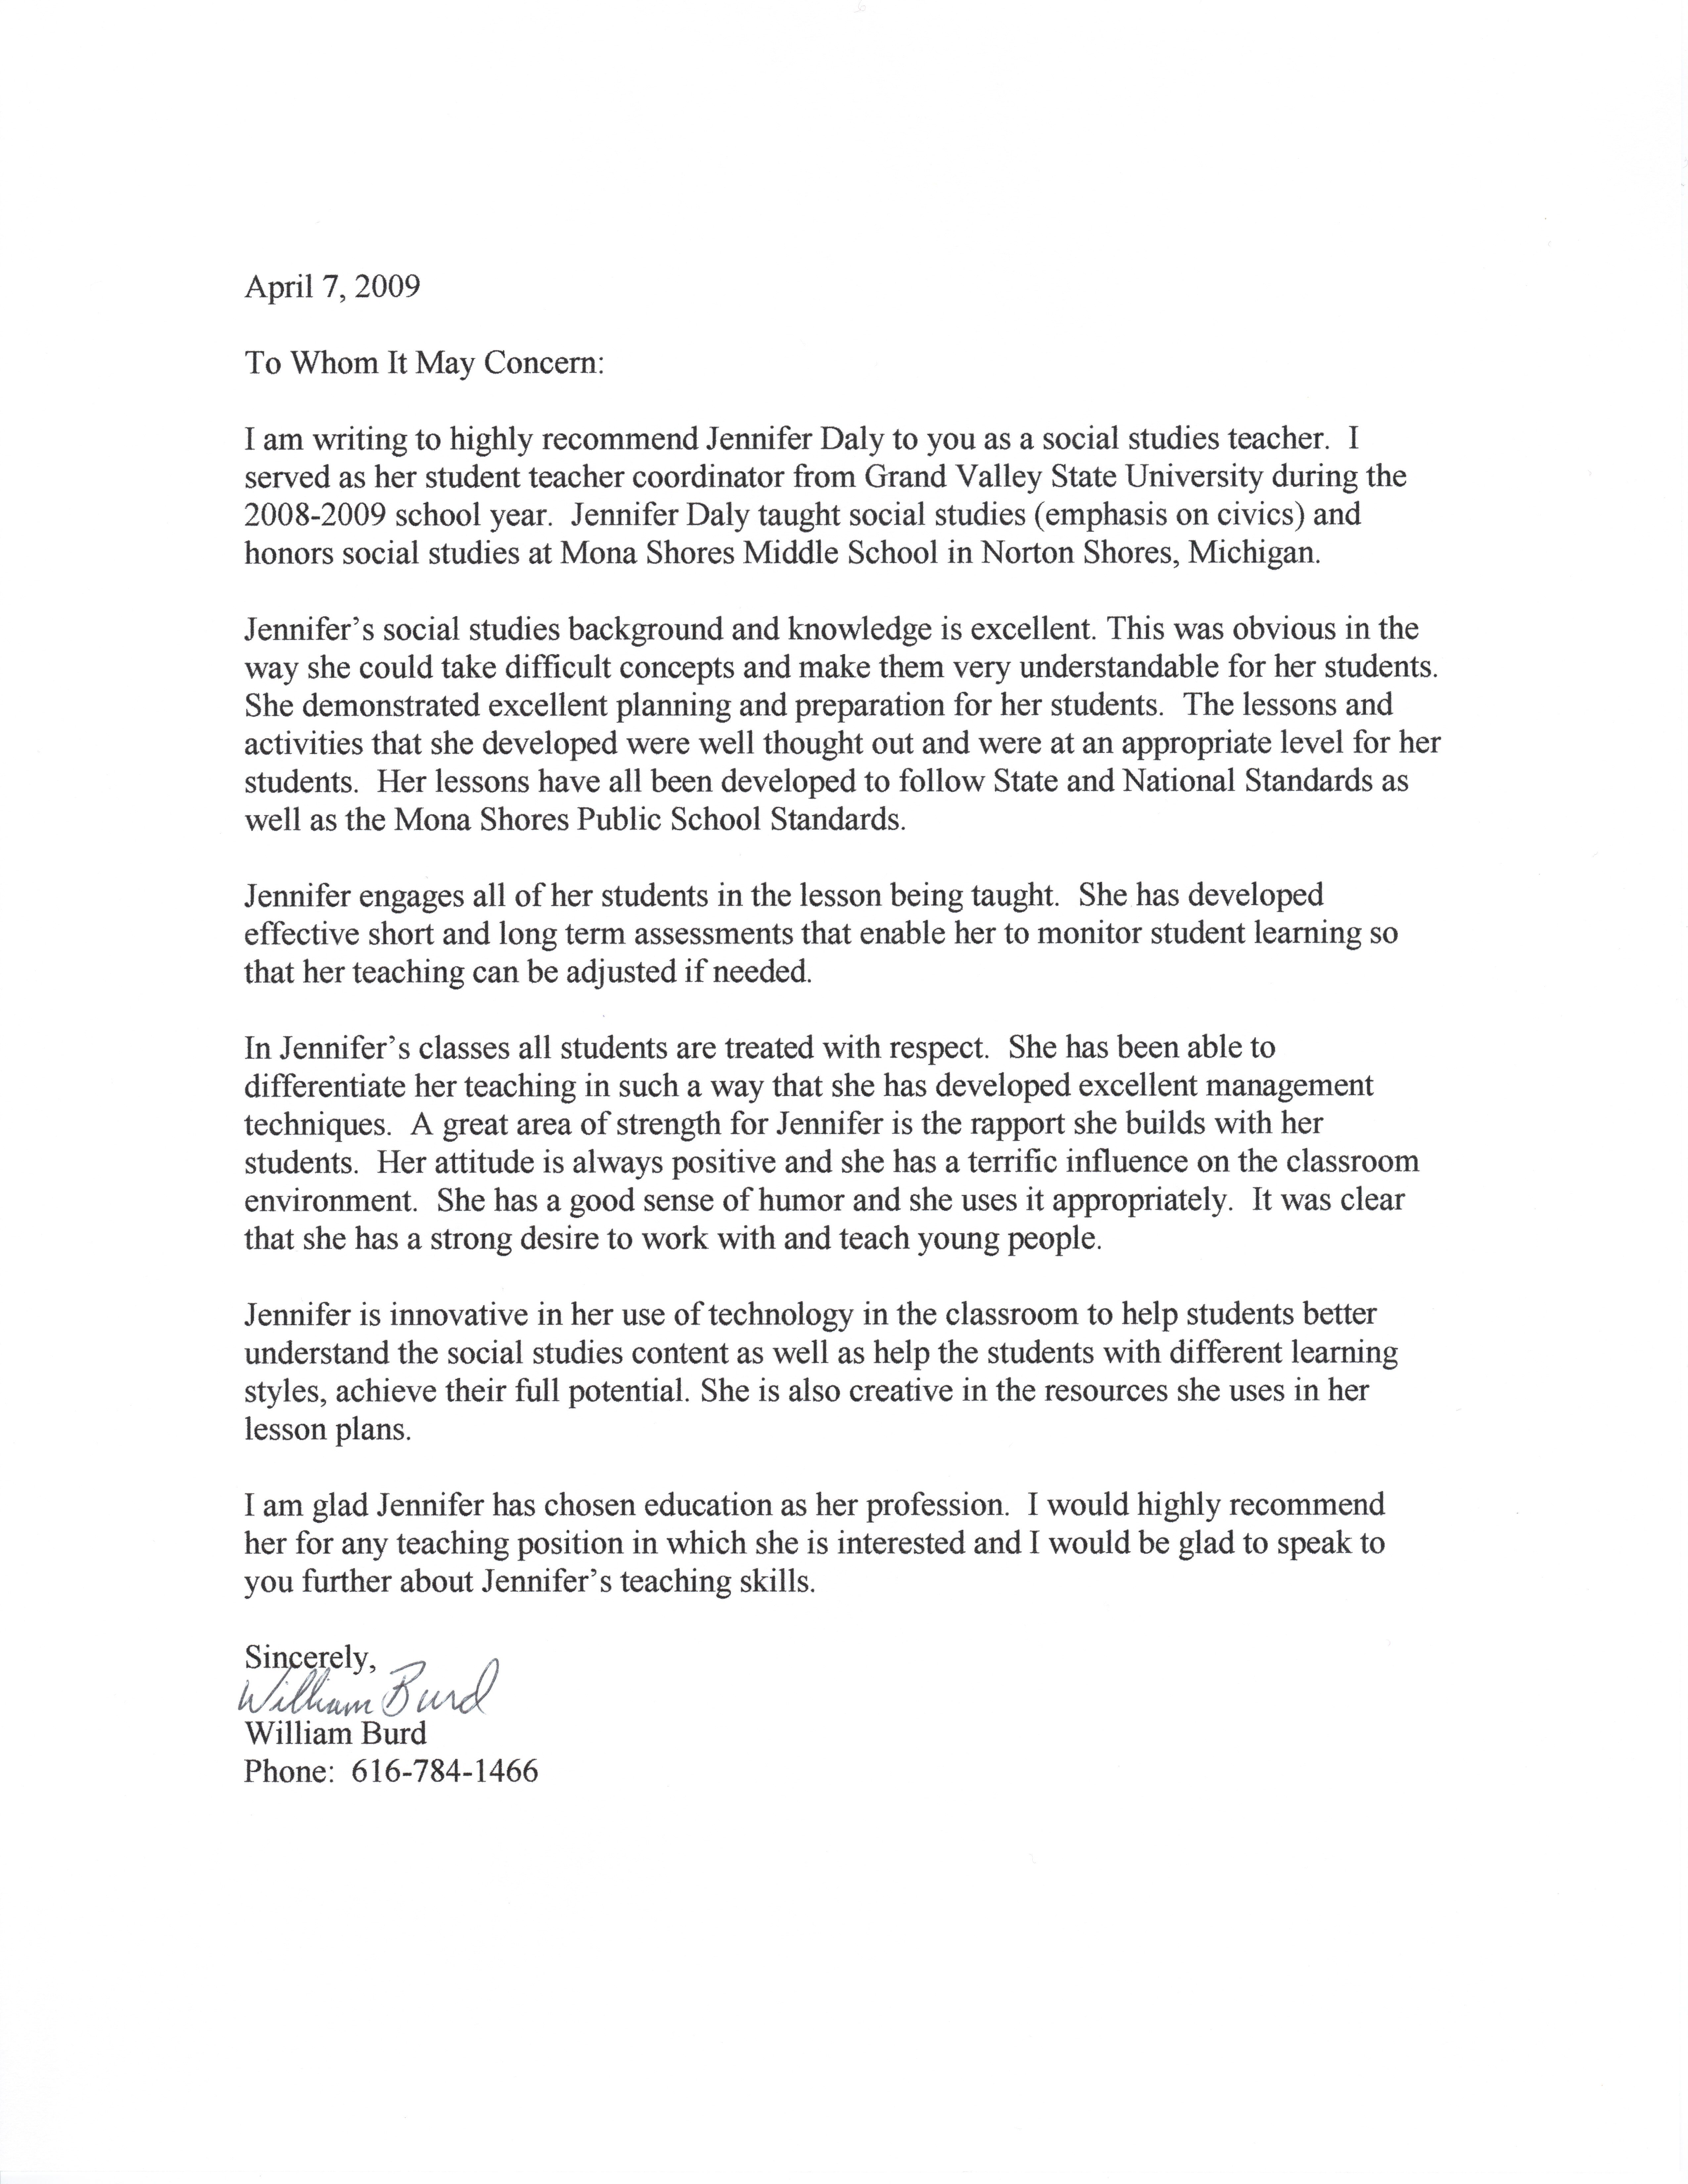 Student teacher recommendation letter examples letter of student teacher recommendation letter examples letter of recommendation student teaching coordinator expocarfo Gallery